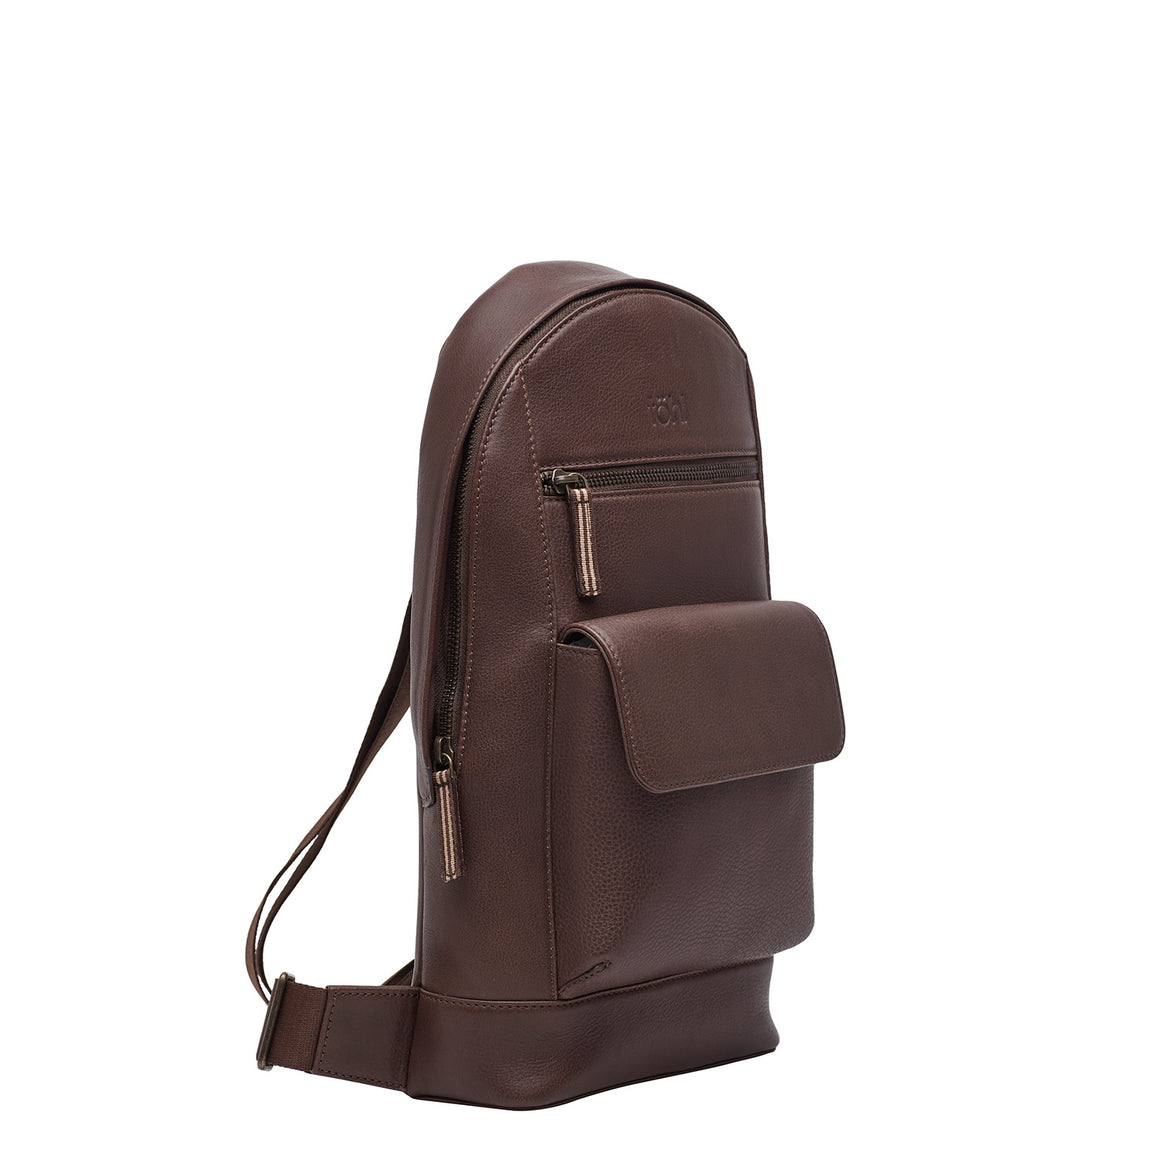 BP 0013 - TOHL BORDIN MEN'S BACKPACK - MUD